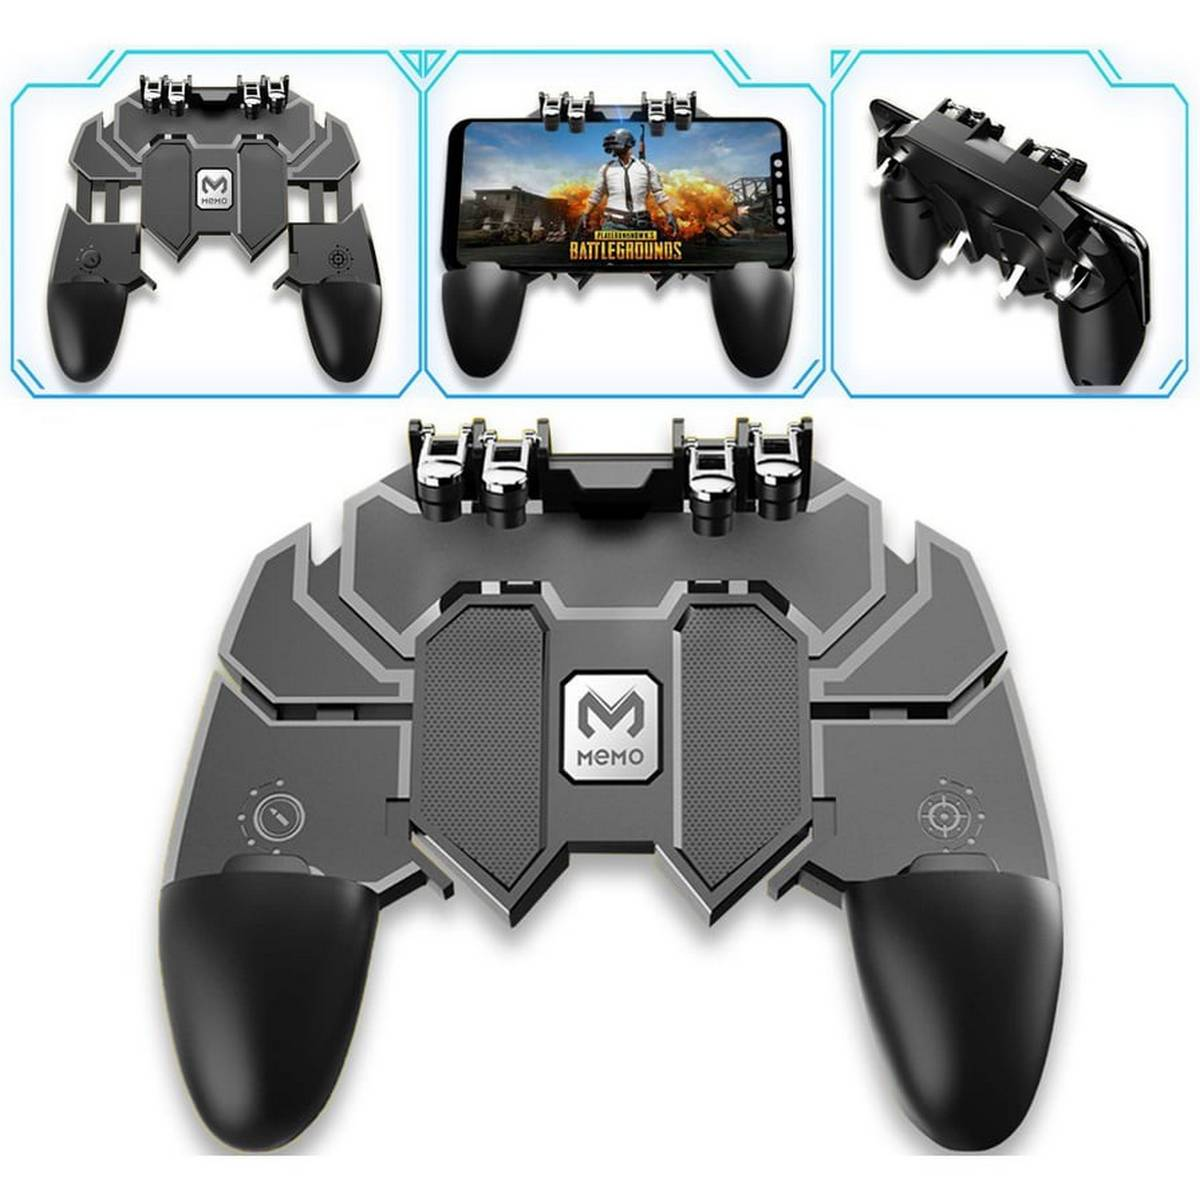 Ak66 PUBG Trigger Gamepad For Professional Gaming with Builtin L1 R1 Triggers Controllers For Mobile iOS Android